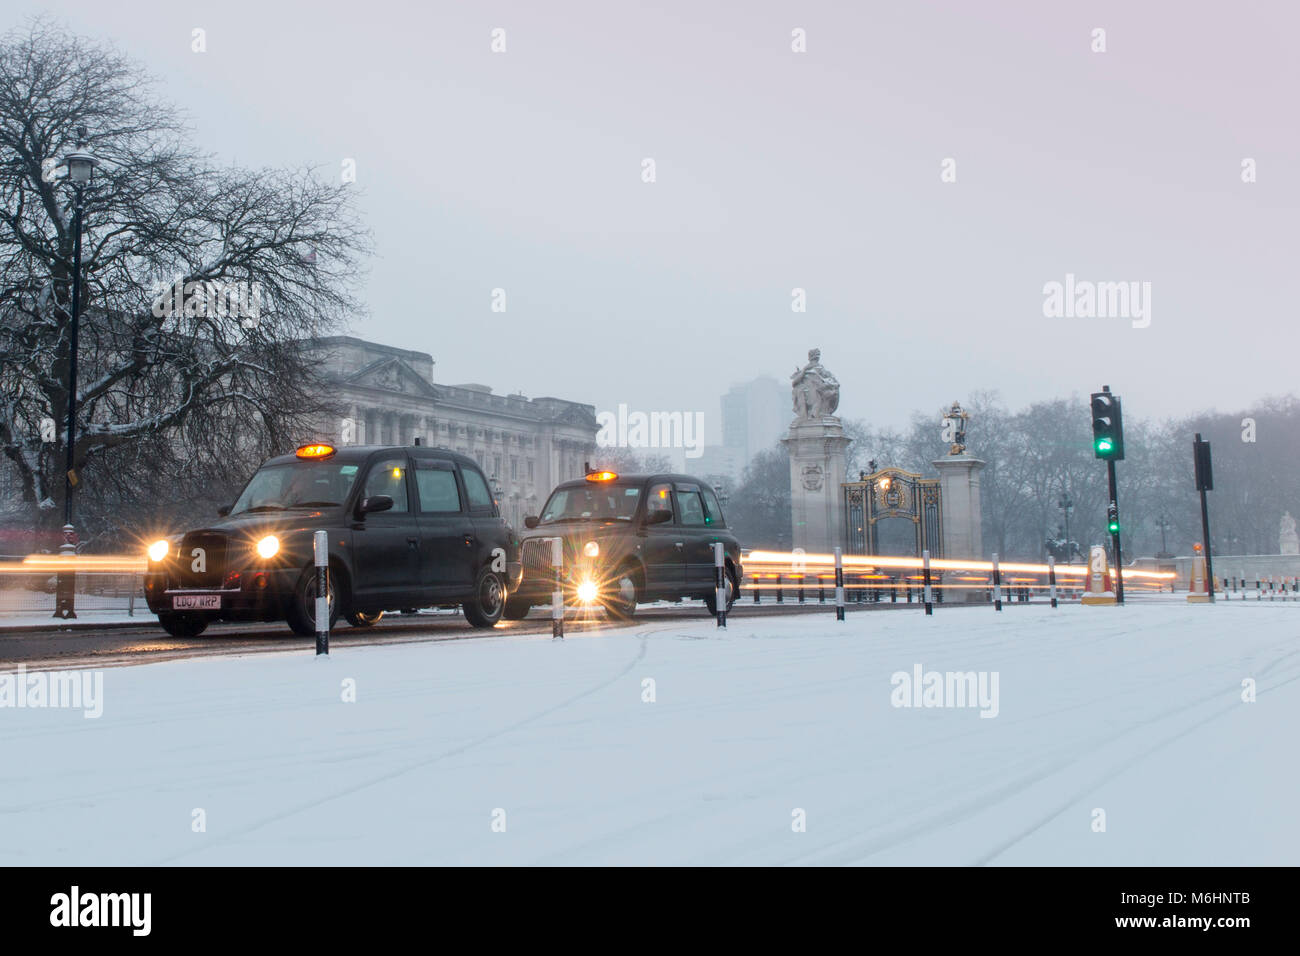 Taxis and traffic outside Buckingham Palace in the snow - Stock Image